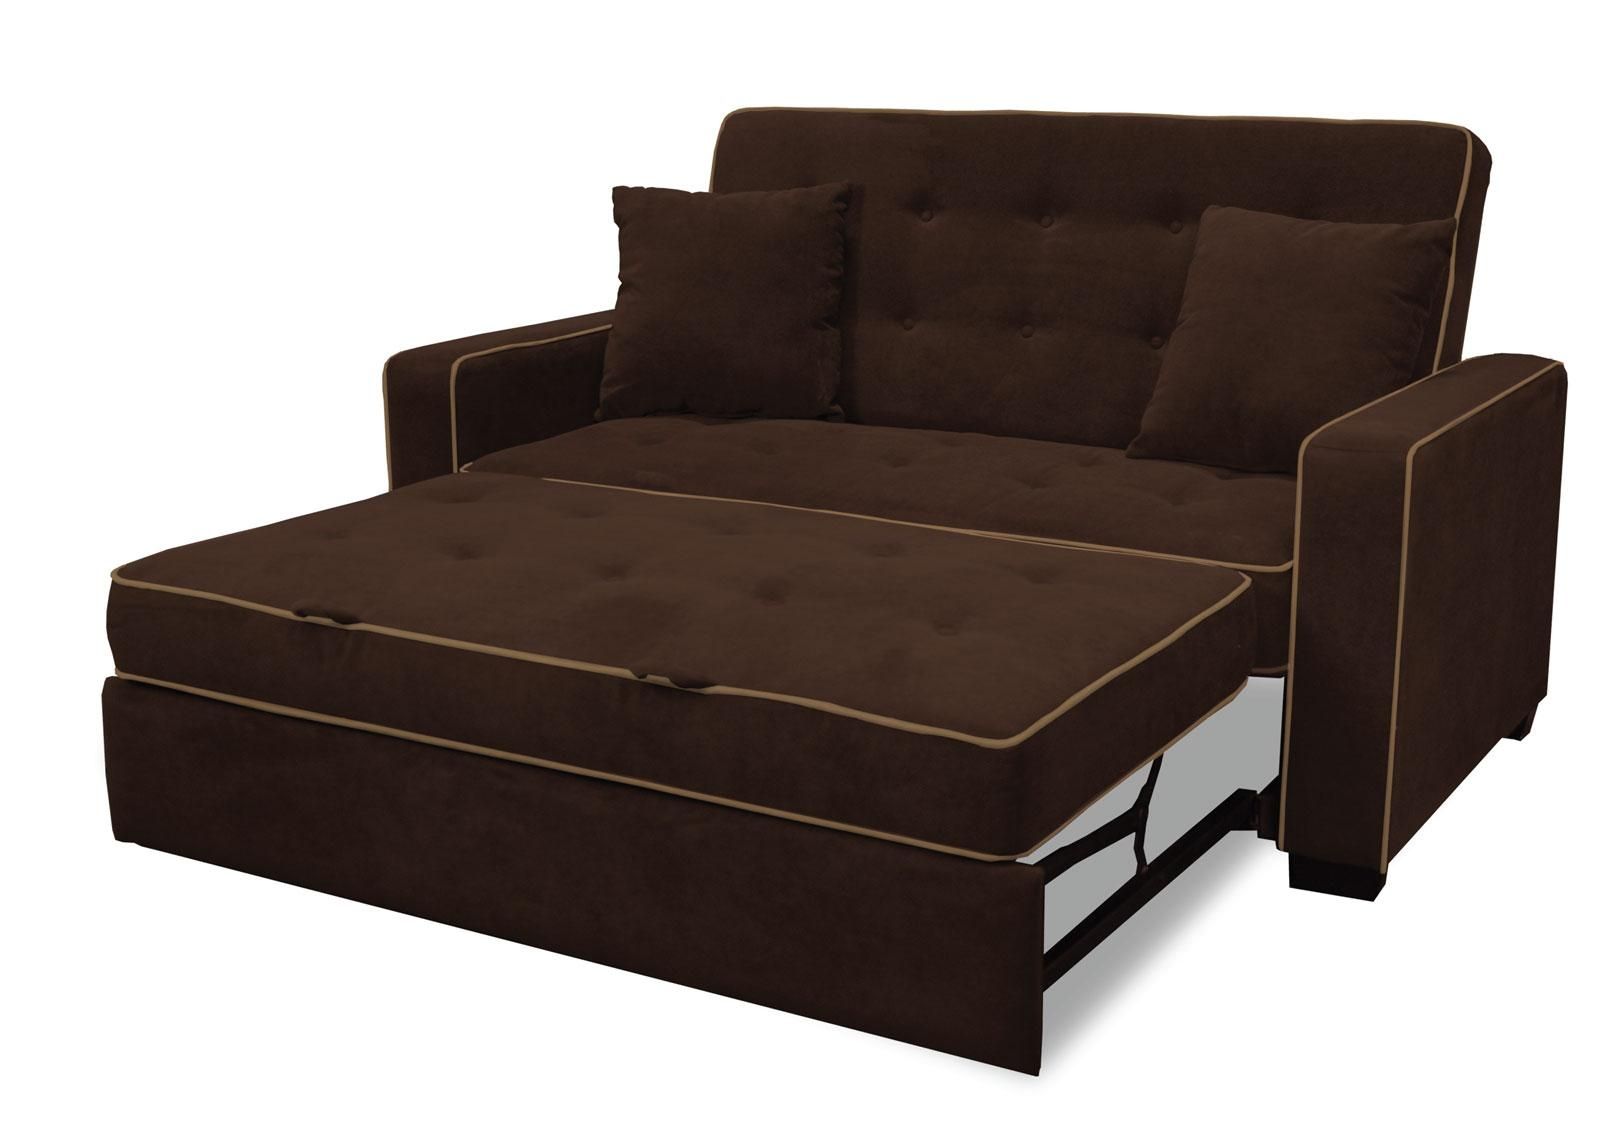 Sofa Tufted Leather Sleeper Martha | Tamingthesat For Tufted Sleeper Sofas (View 18 of 20)